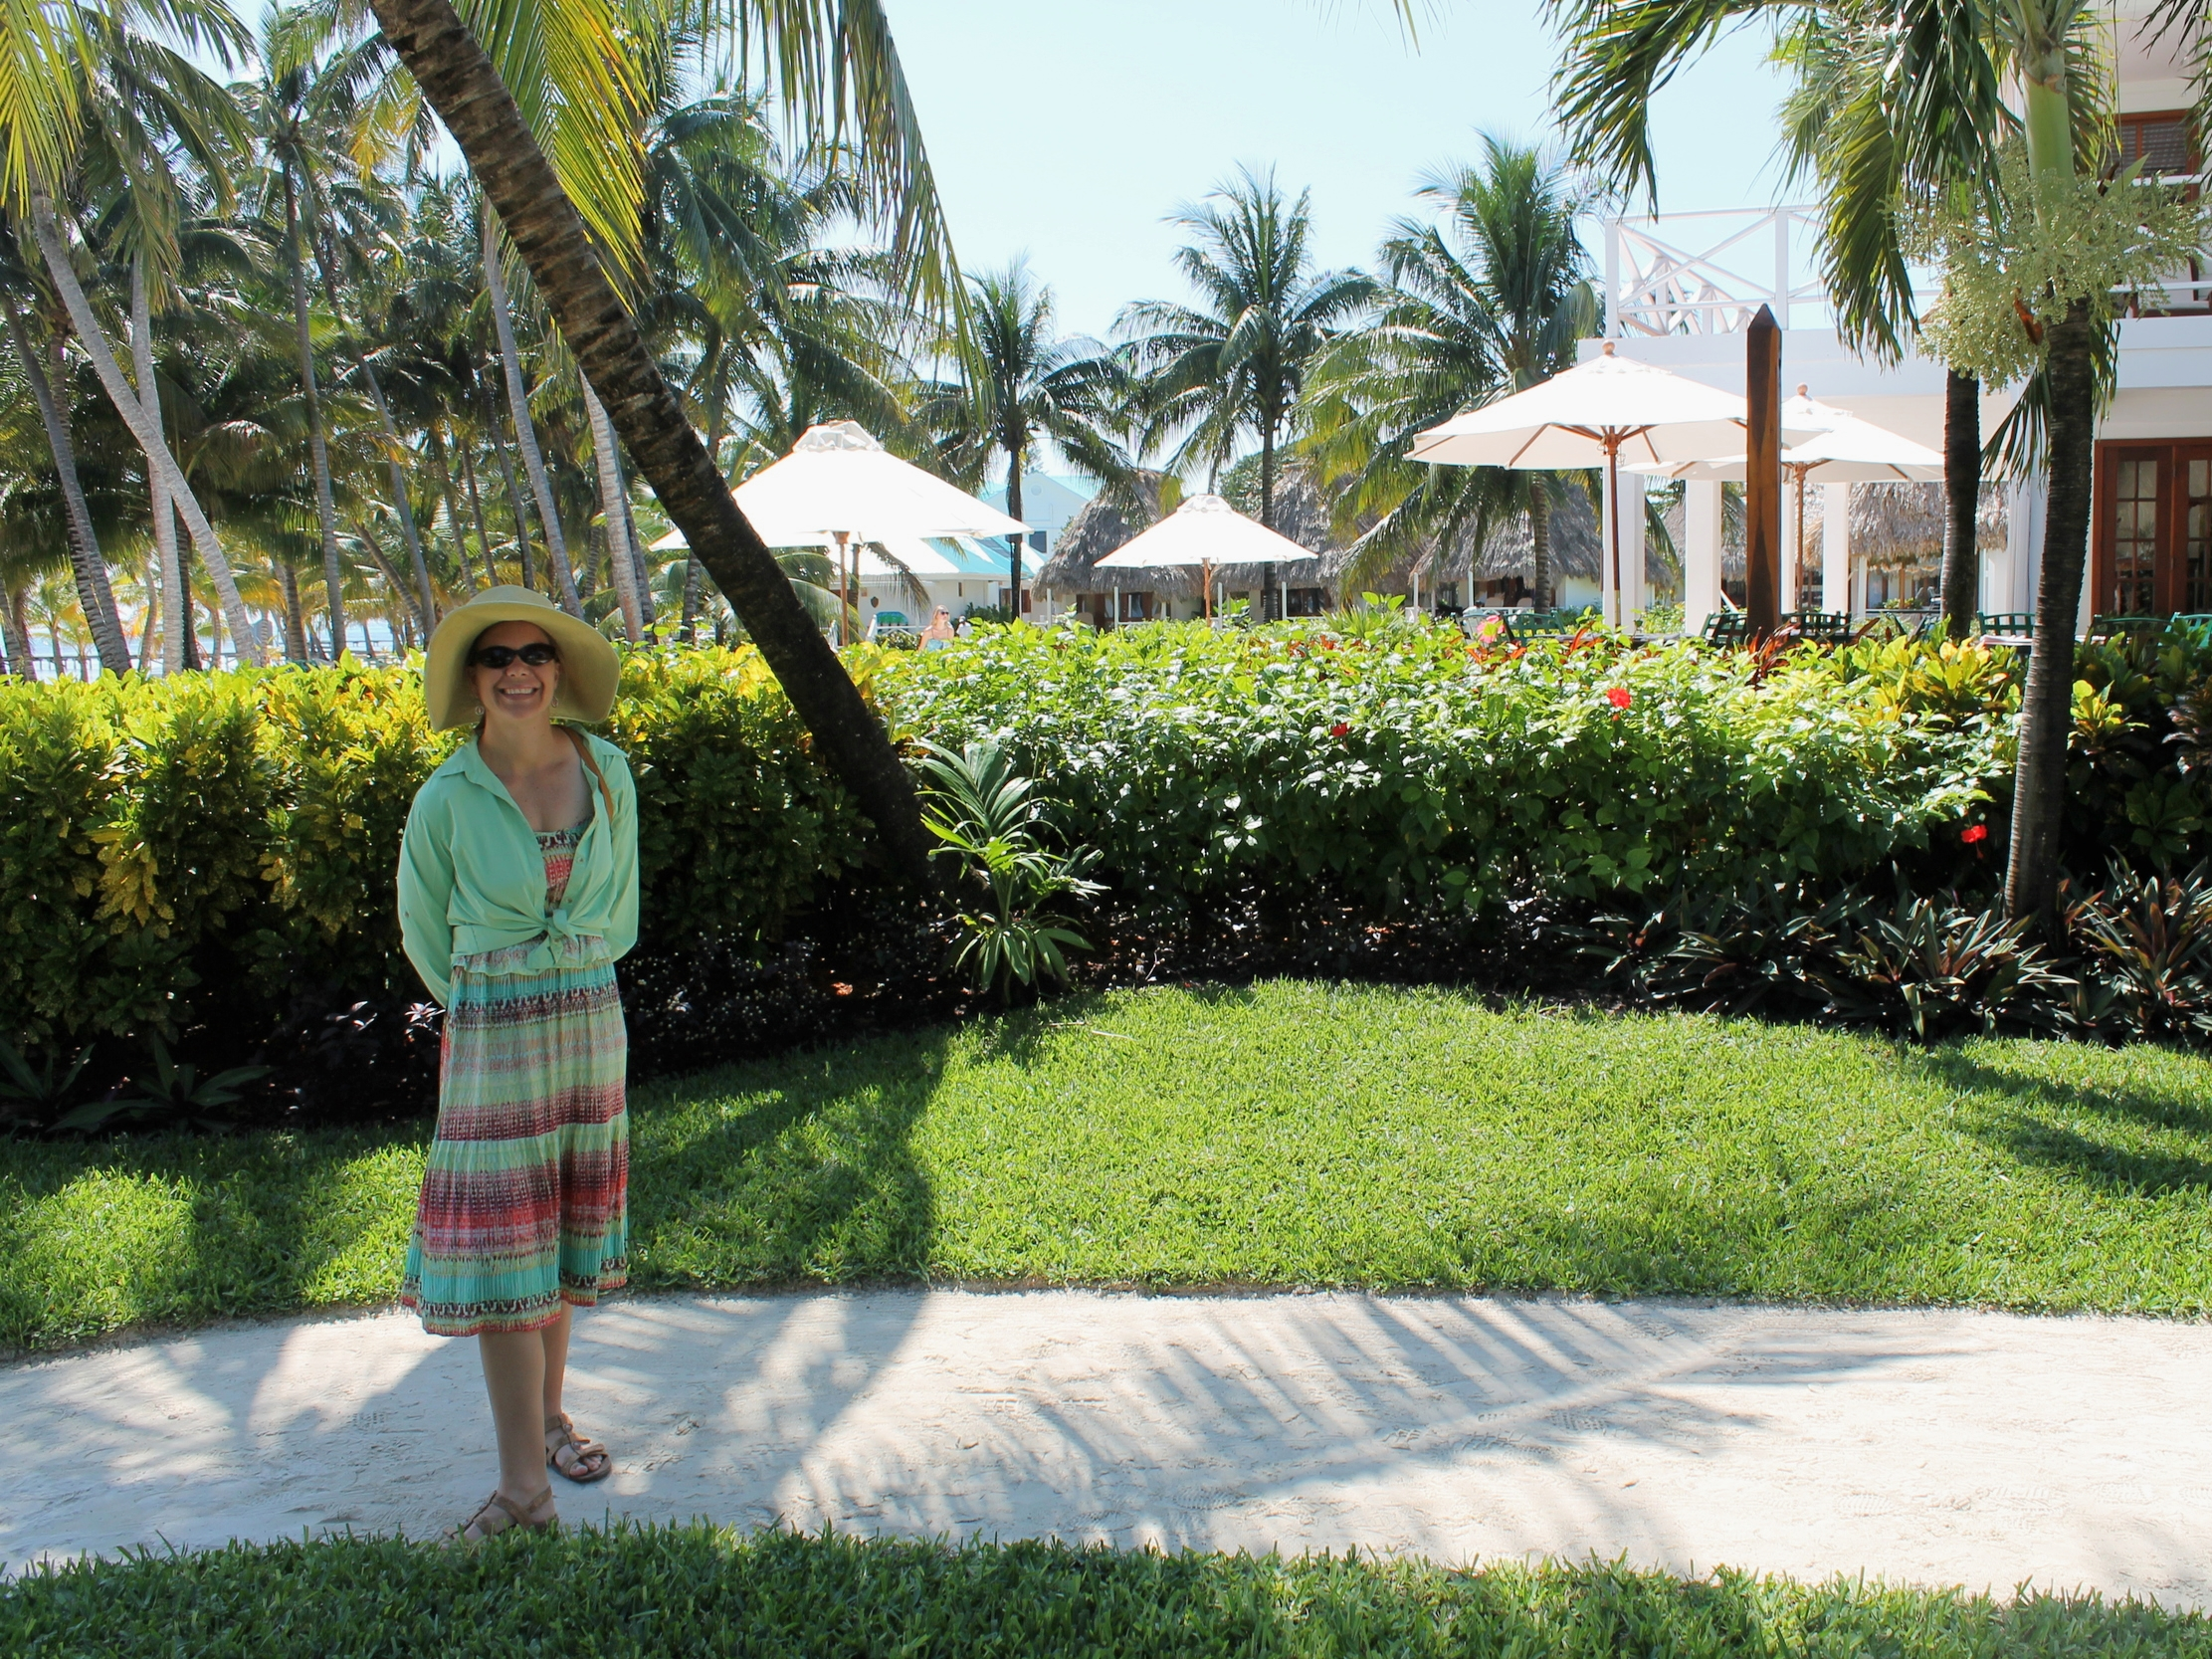 Catarina Schmidt - Belize Expert - Belize Travel Agent - All Inclusive Vacation Packages - SabreWing Travel